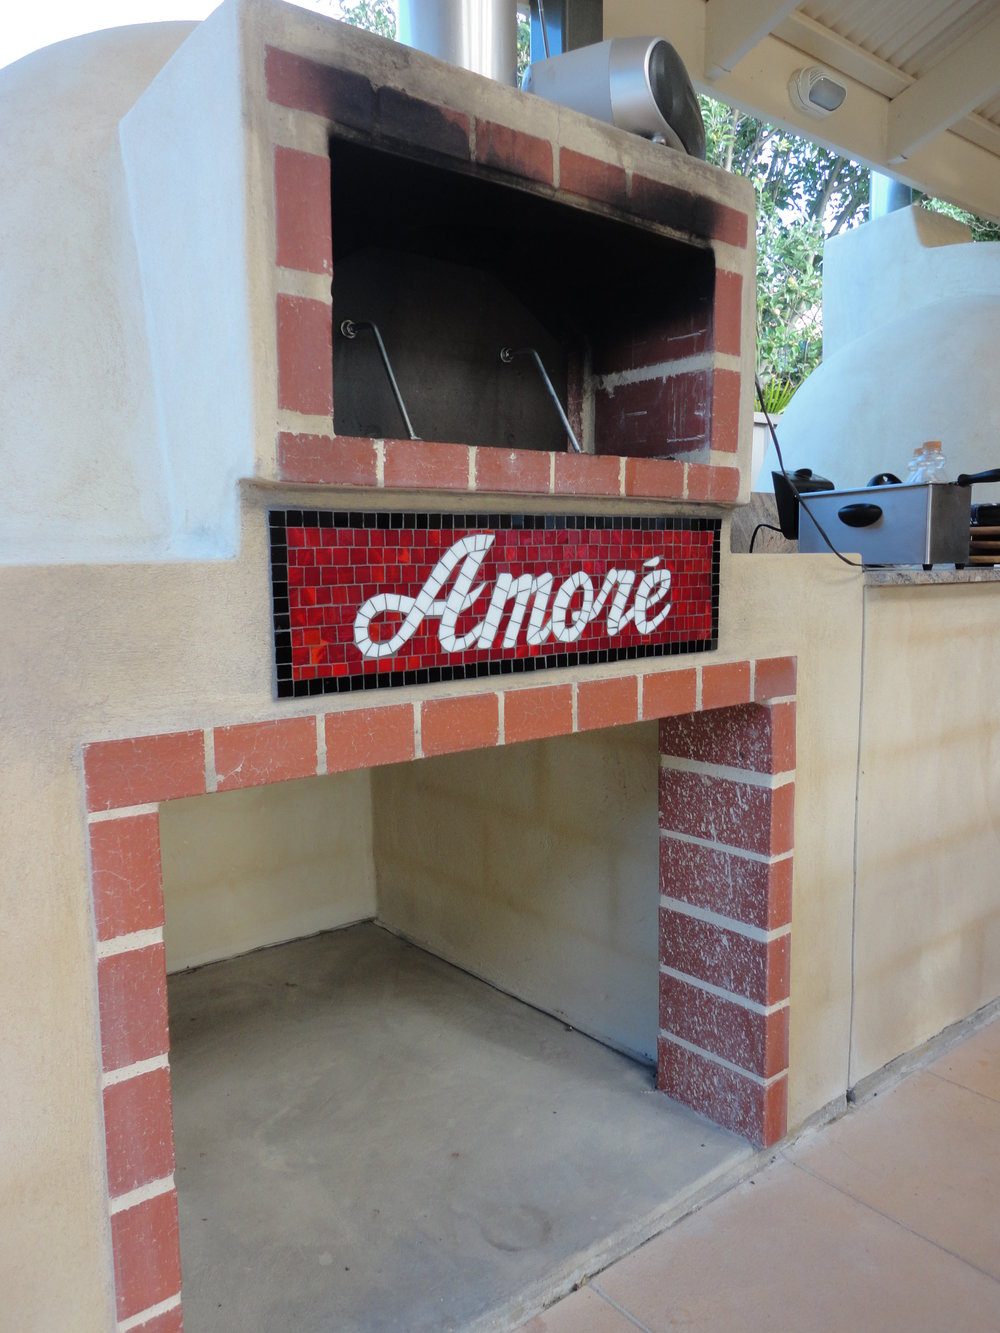 Amore' Wood Ovens (Commission)